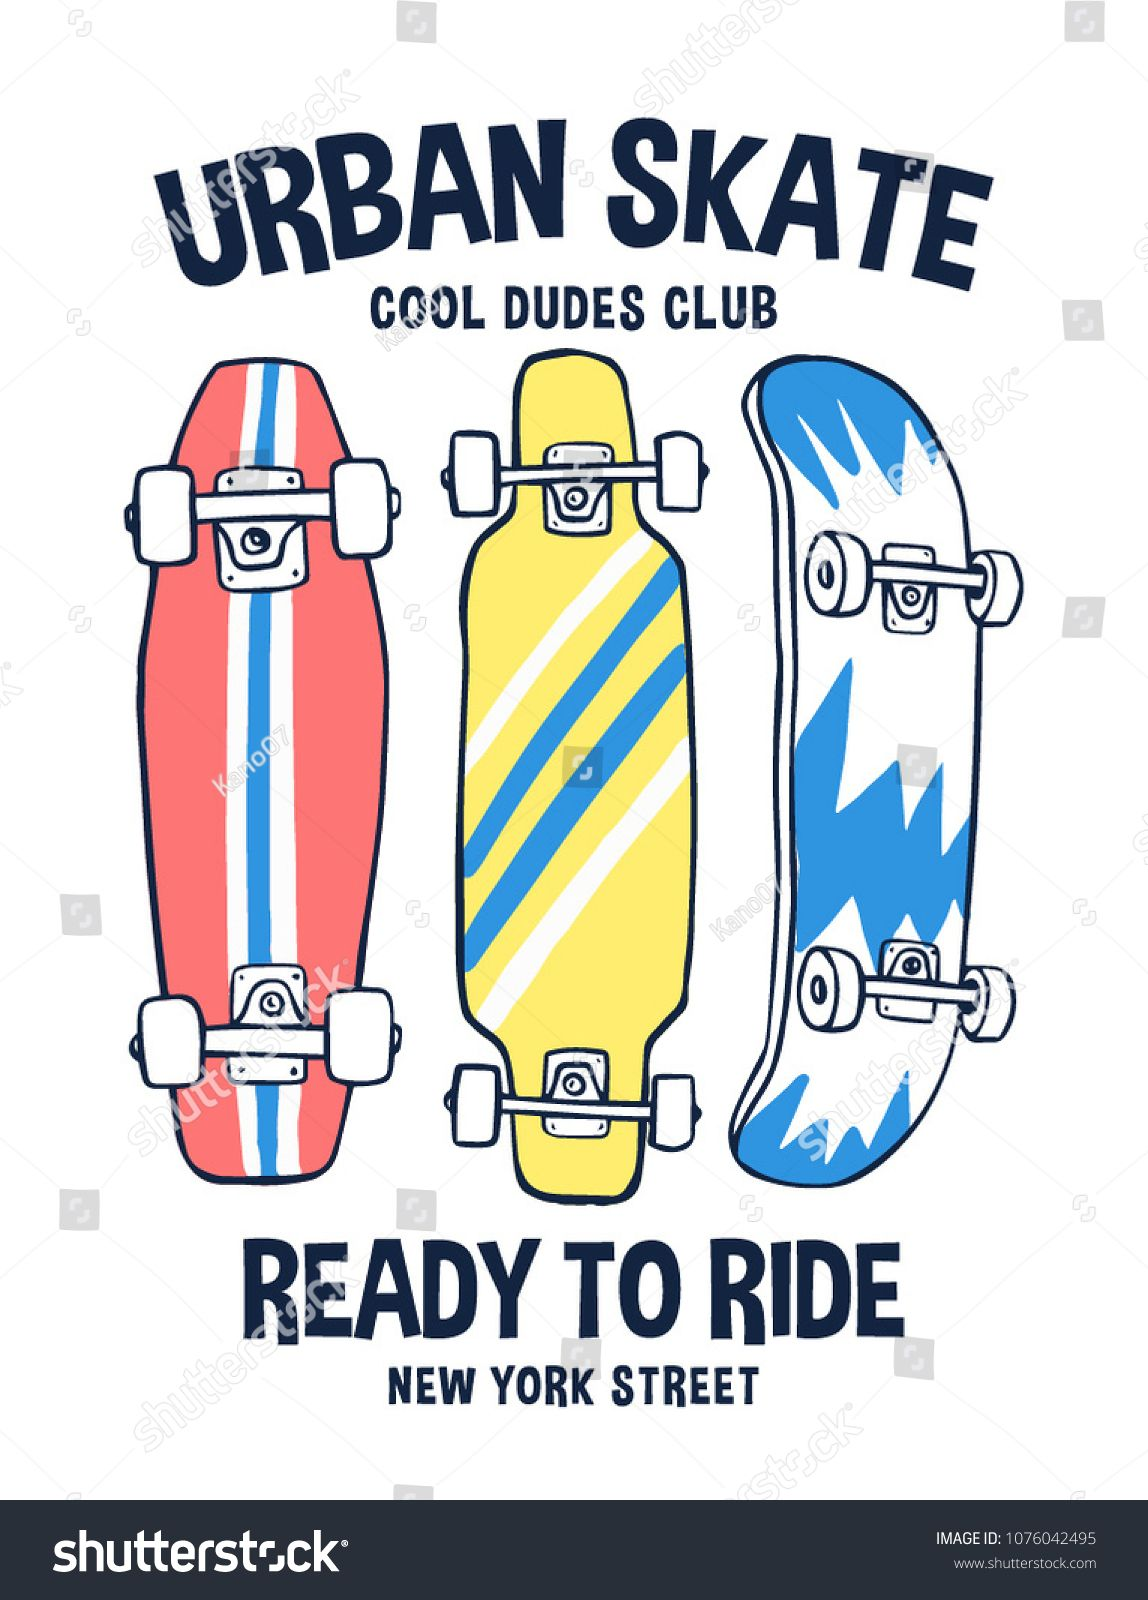 Skate Board Vector Illustrations With Slogans For T Shirt Print And Other Uses Sponsored Affiliate Vector Board S Camisetas Estampadas Slogans Camisetas